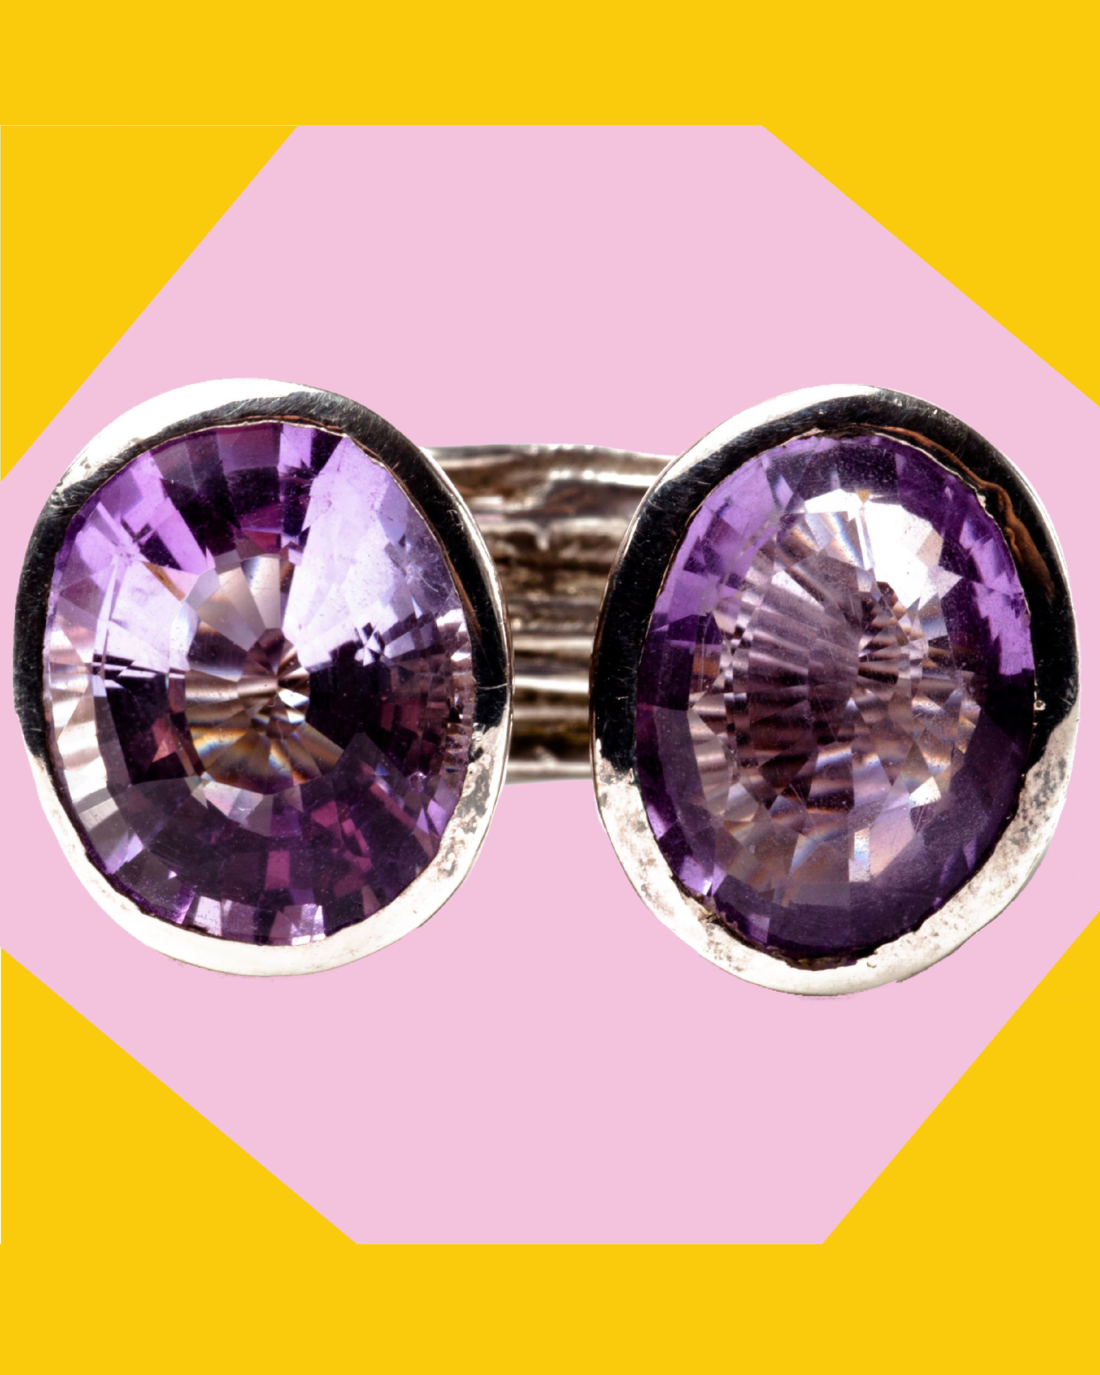 DOUBLE THE AMETHYST ON THE STERLING SILVER ROCKS RING, CIRCA 1990'S